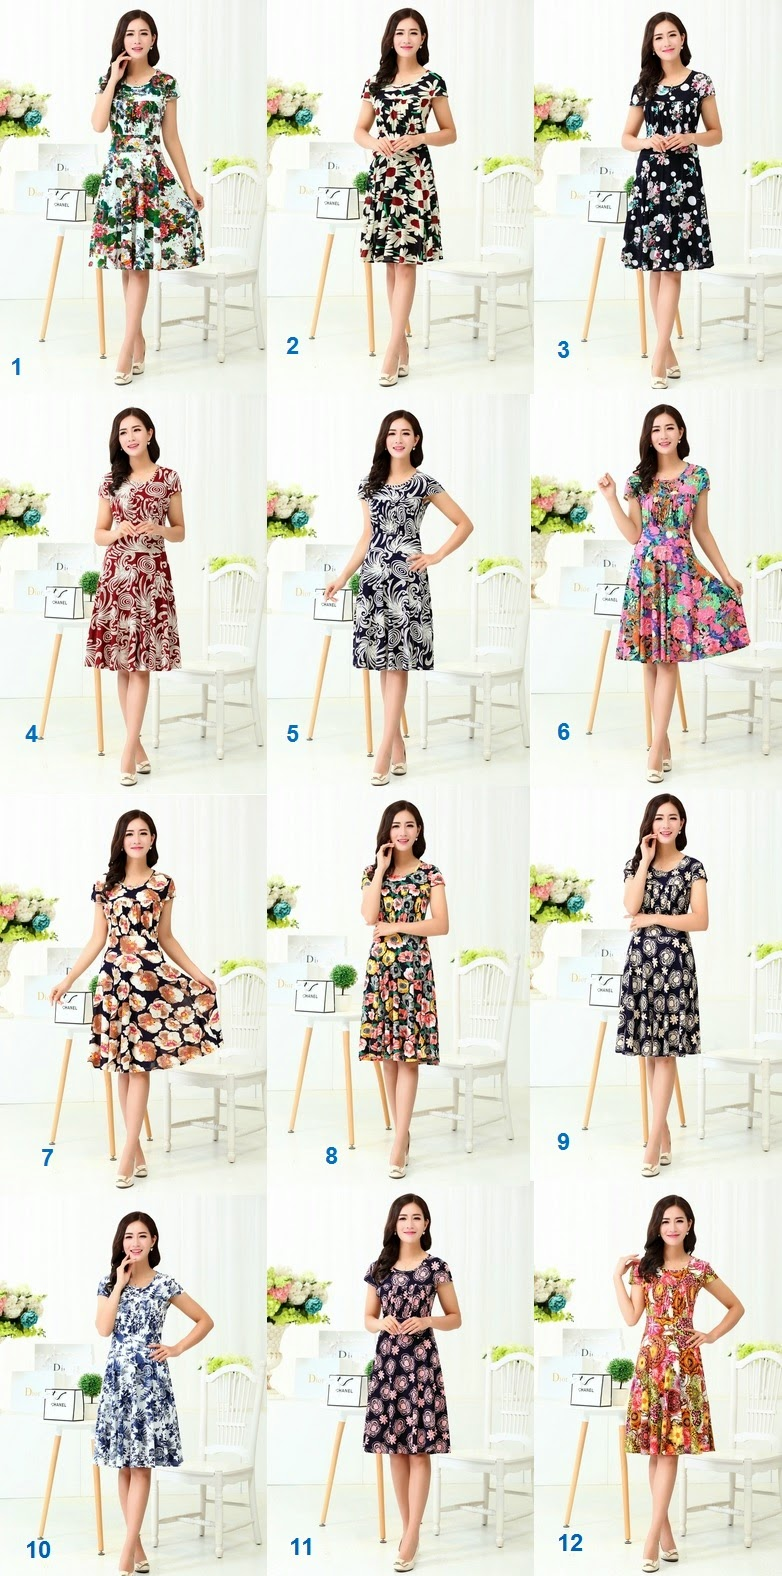 New 2015 Short Sleeve Front Gathered Ice Silk Pass Knee Length Dress